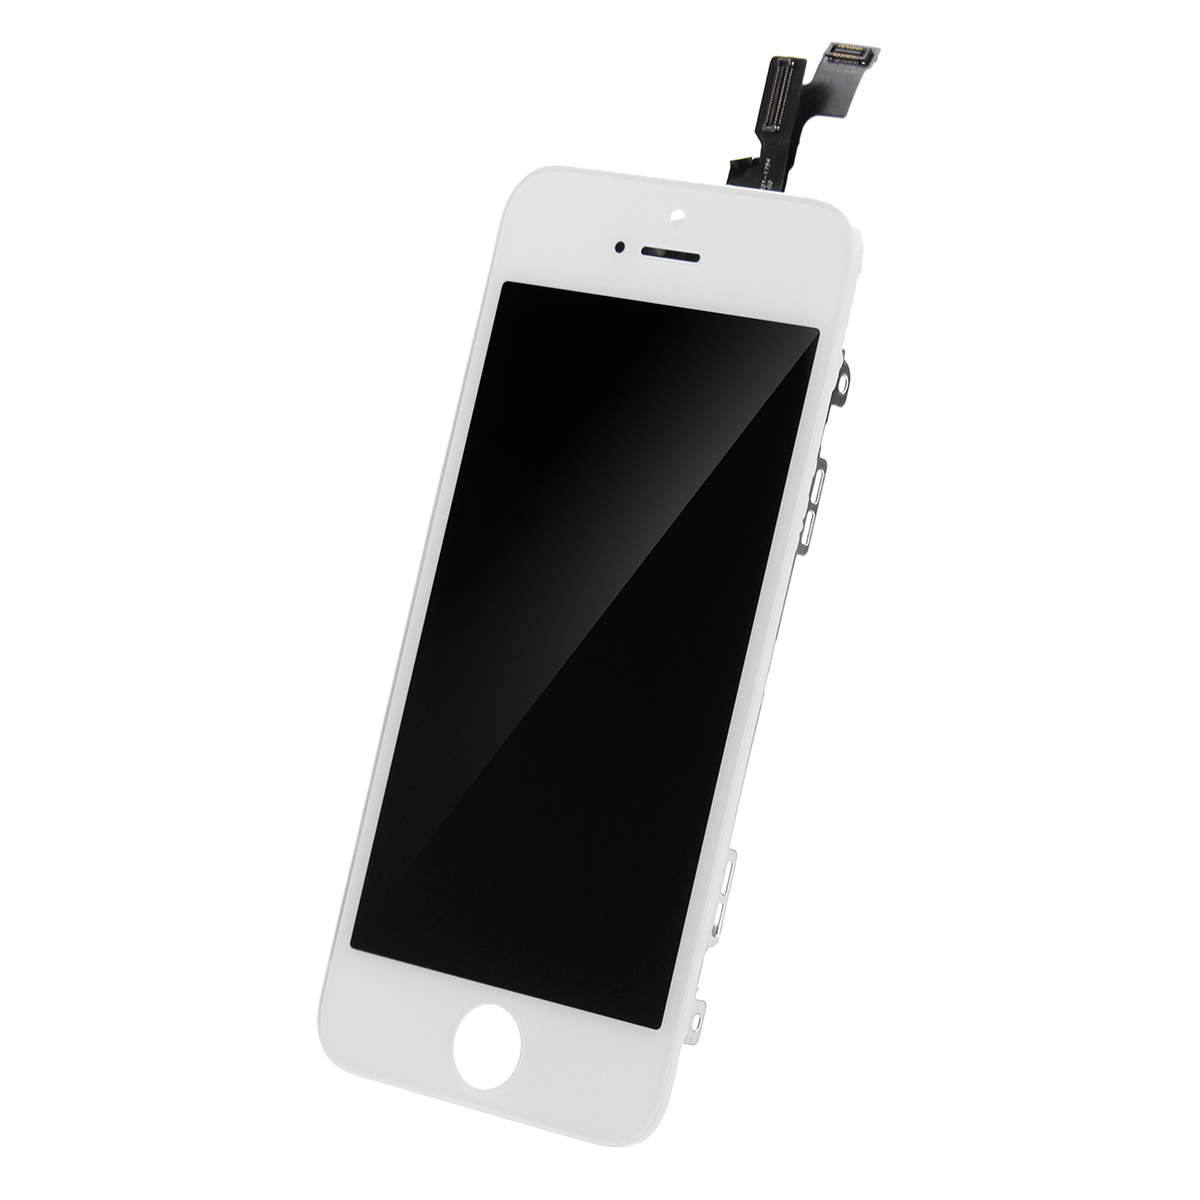 LCD Touch Screen Digitizer Assembly Replacement Part & Repair Tools for iPhone SE